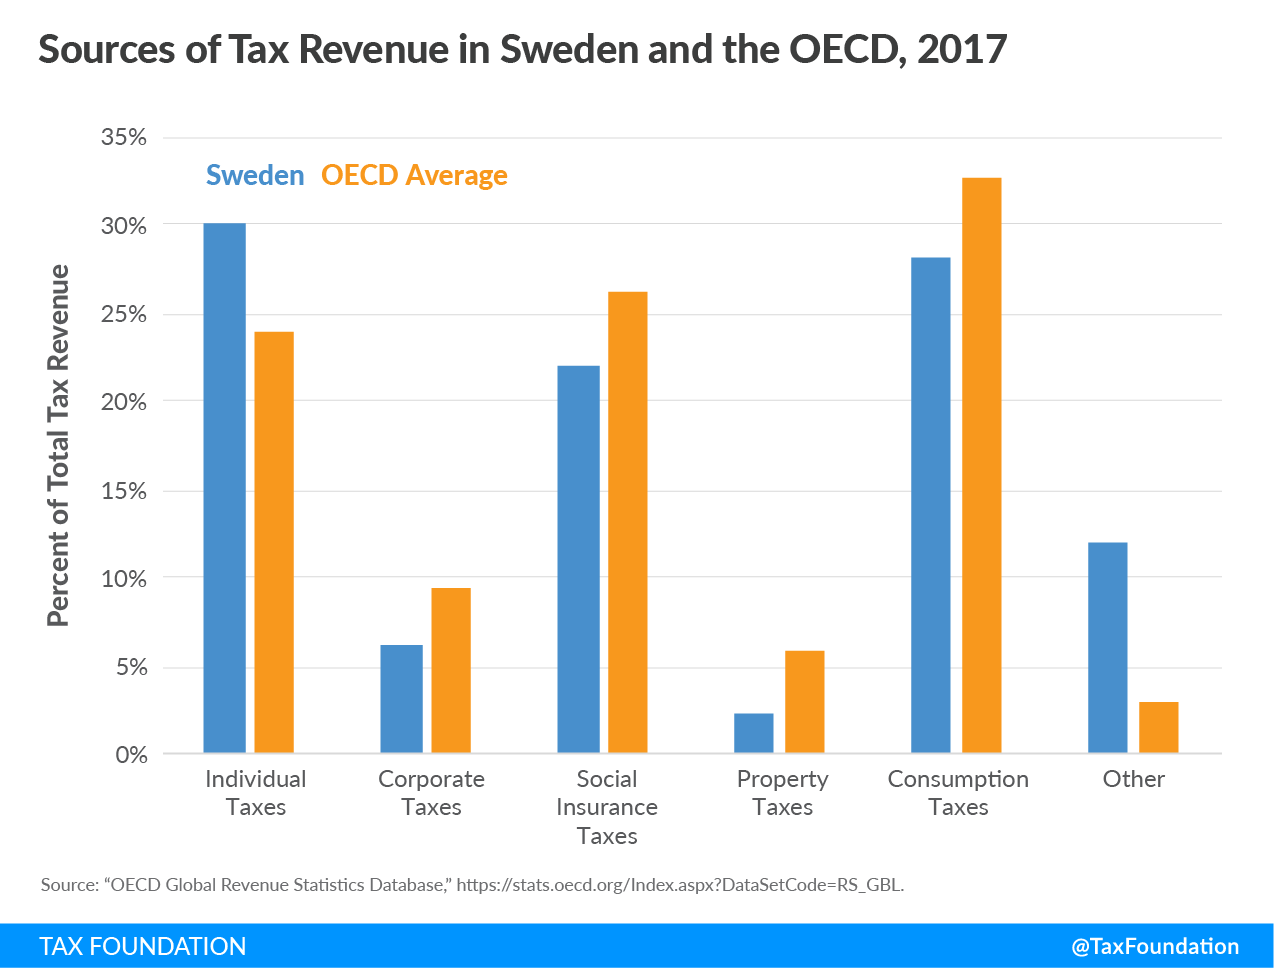 sources of tax revenue in Sweden, Sweden government revenue